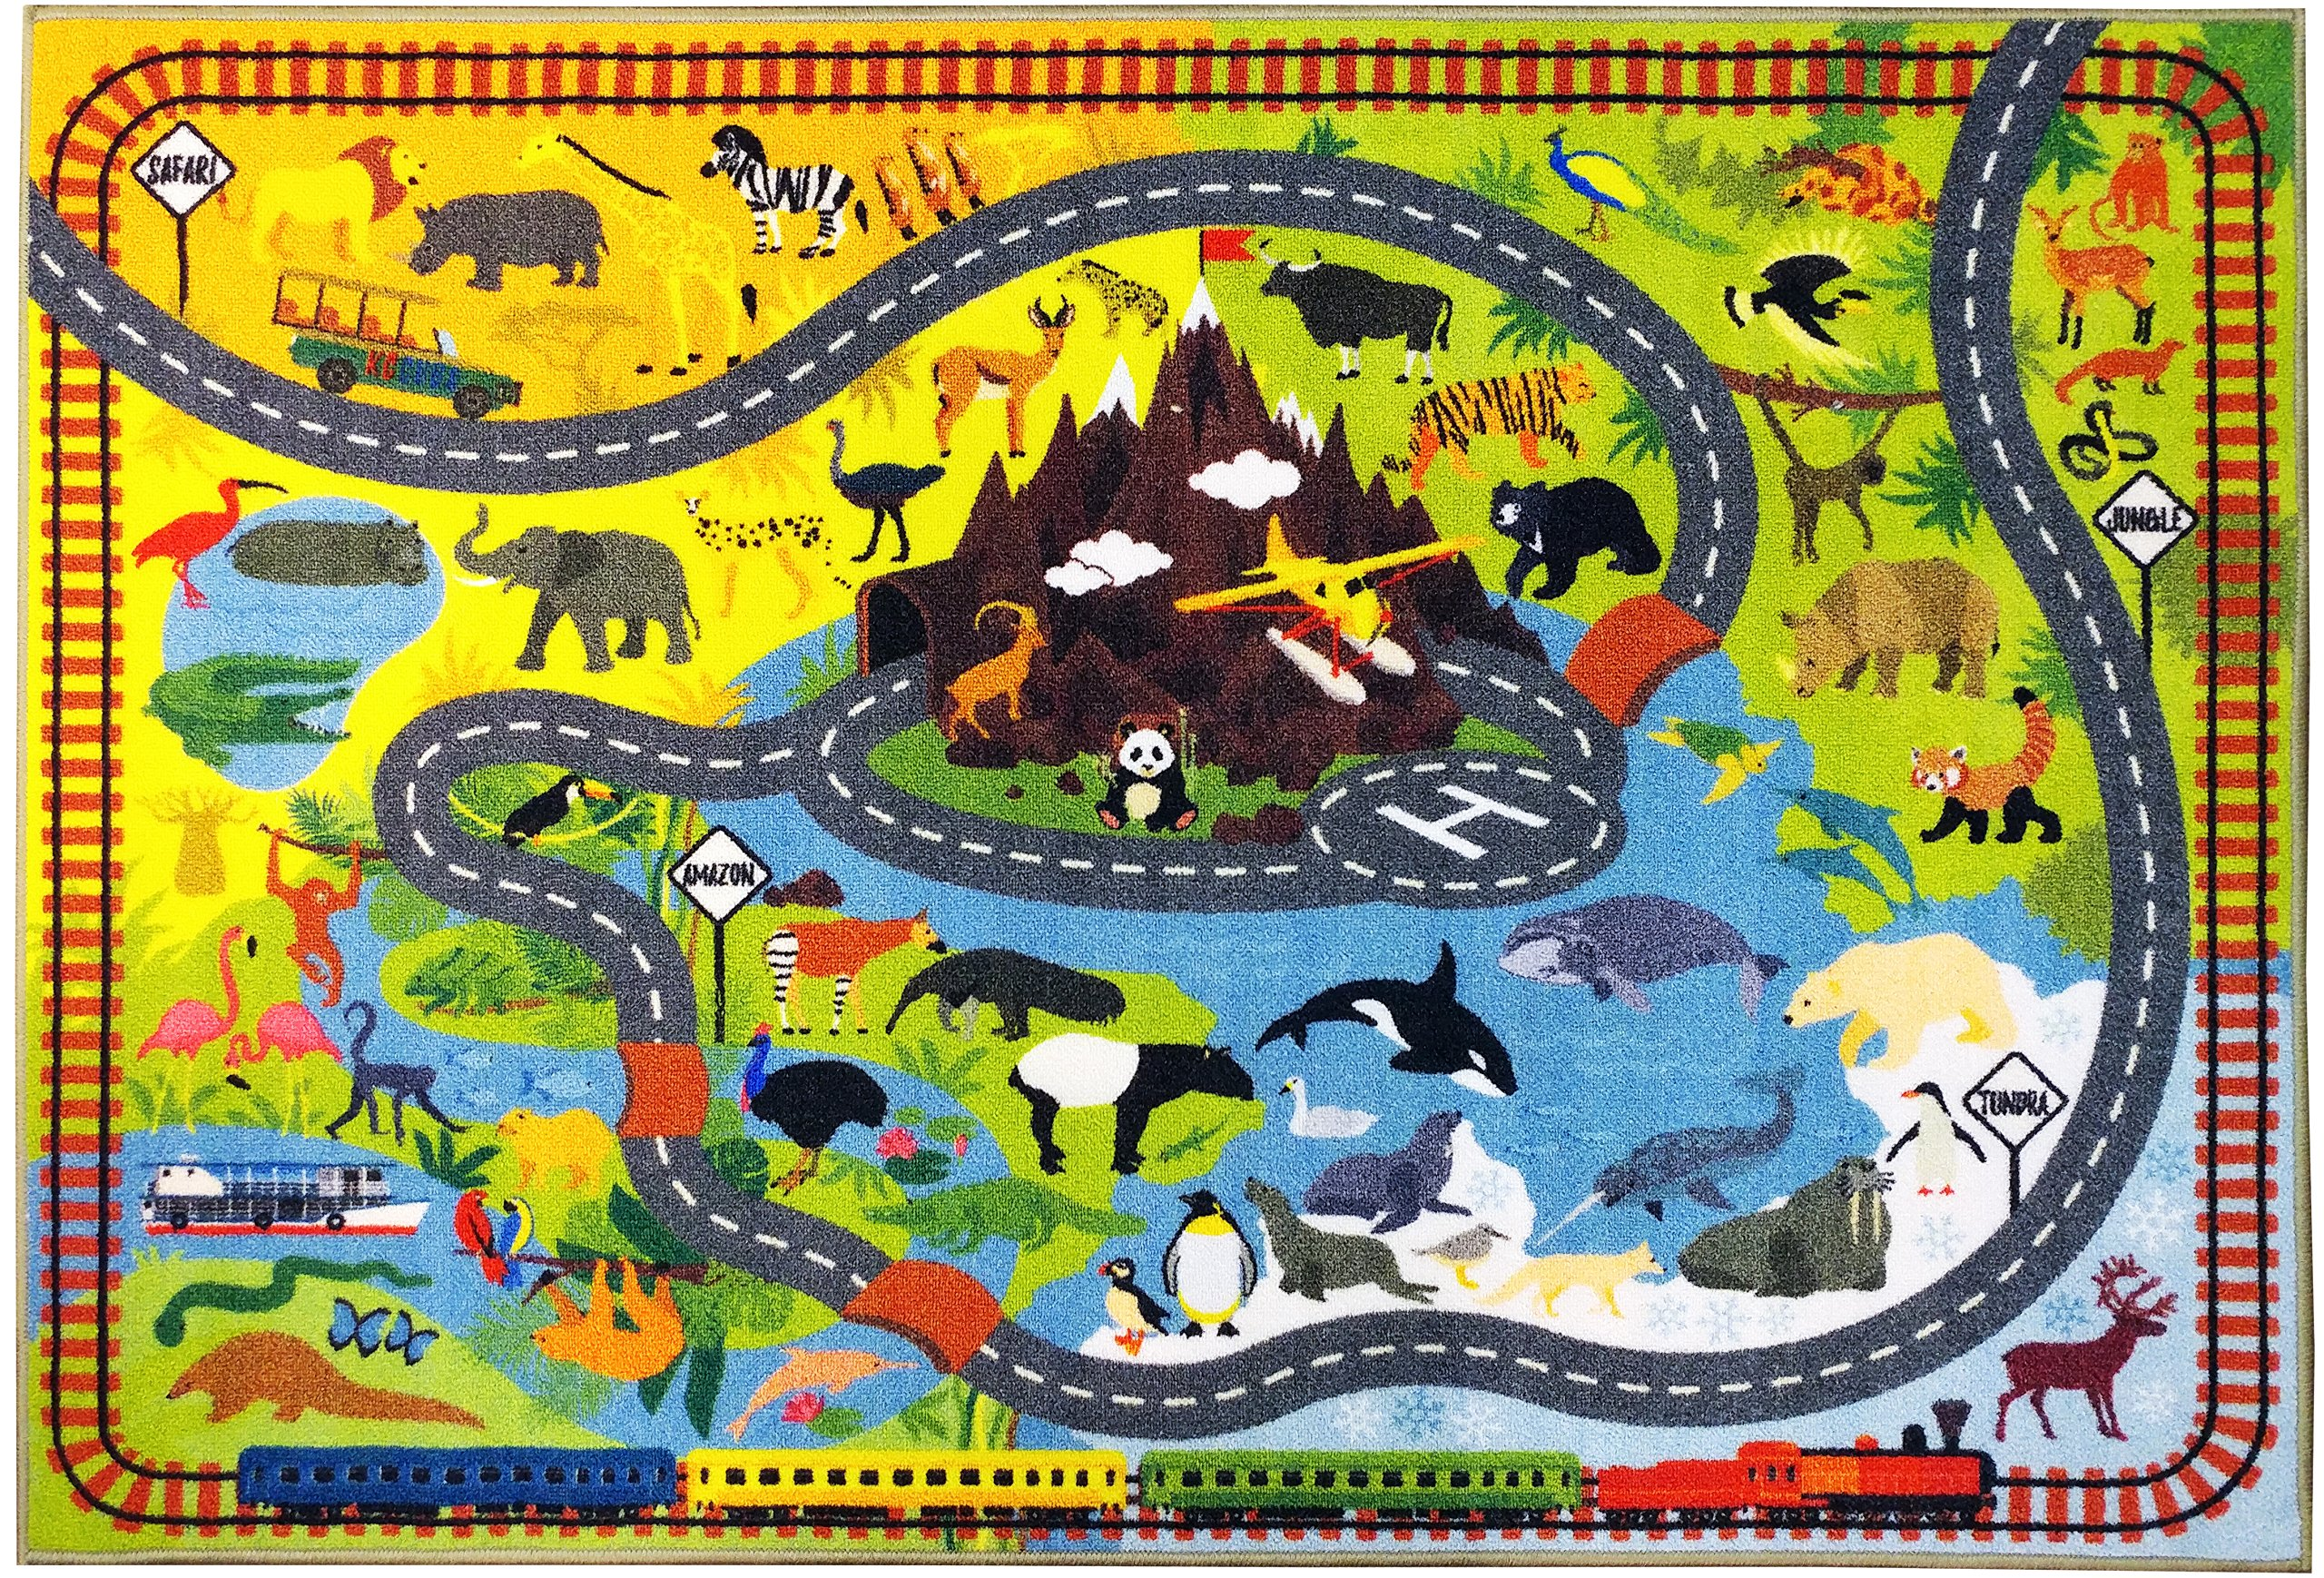 KC CUBS Playtime Collection Animal Safari Road Map Educational Learning & Game Area Rug Carpet for Kids and Children Bedrooms and Playroom (8'2'' x 9'10'')